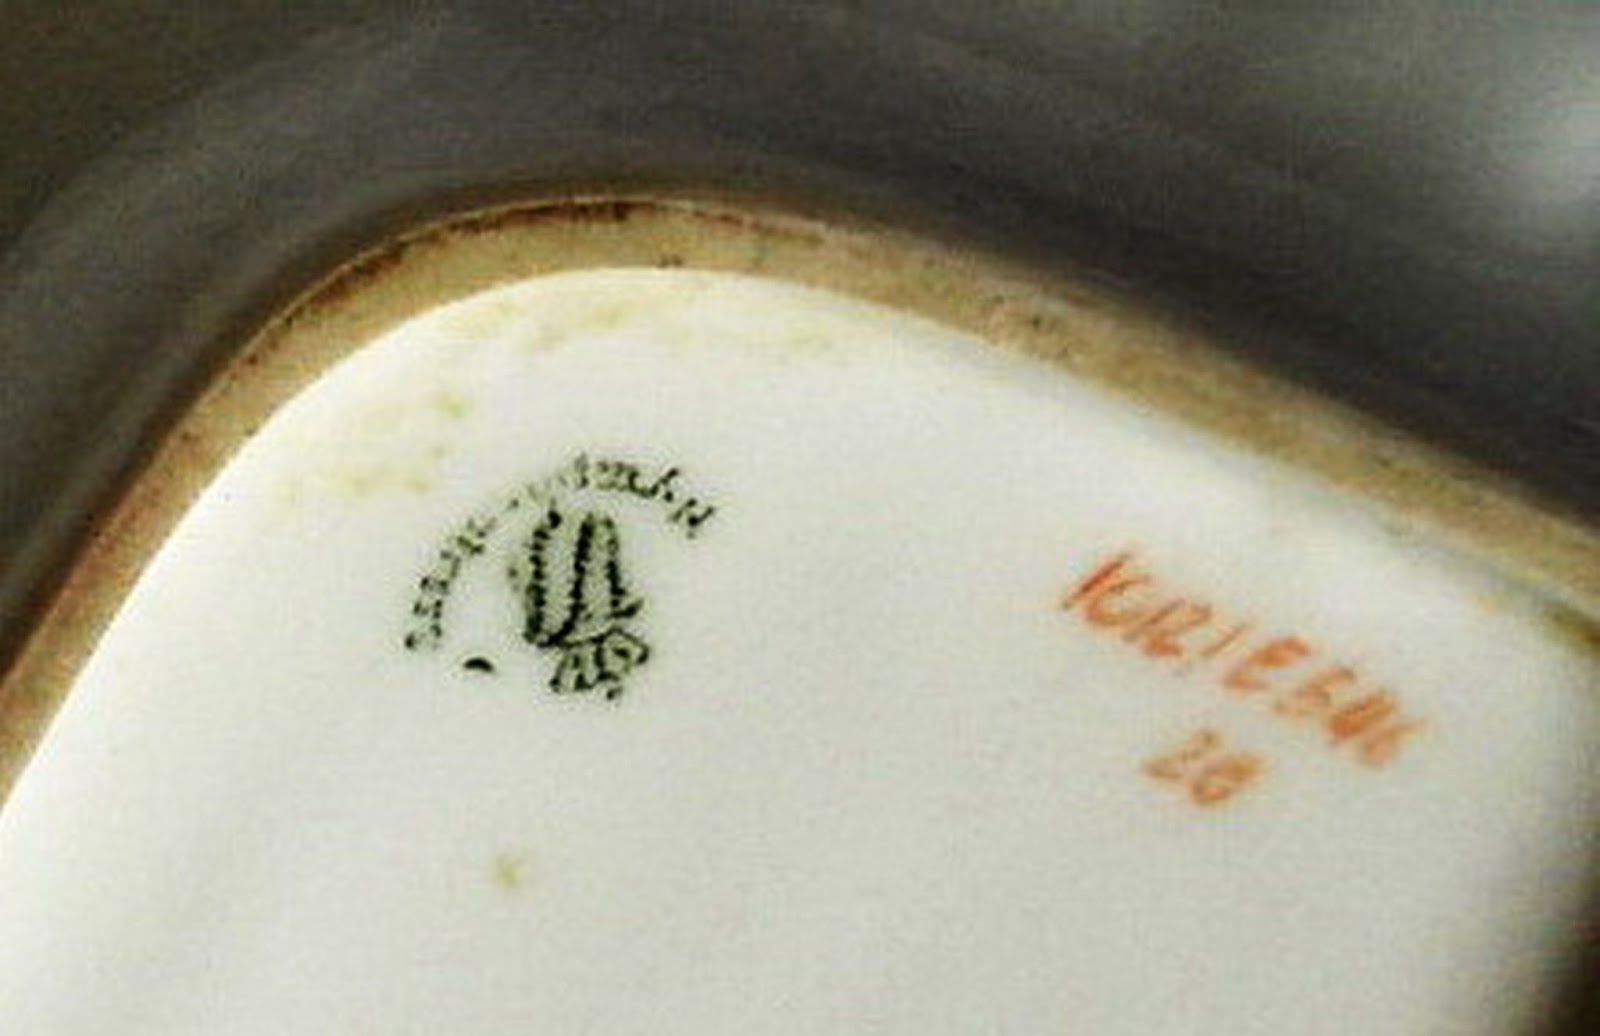 Dating nymphenburg porcelain marks